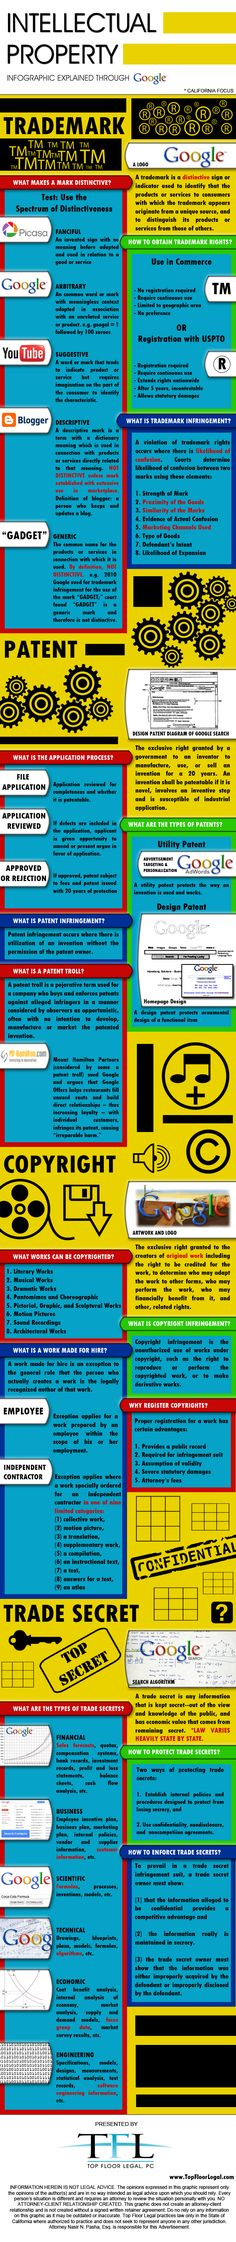 Very handy -- the differences between types of intellectual property (copyright, trademark, patent, etc.)